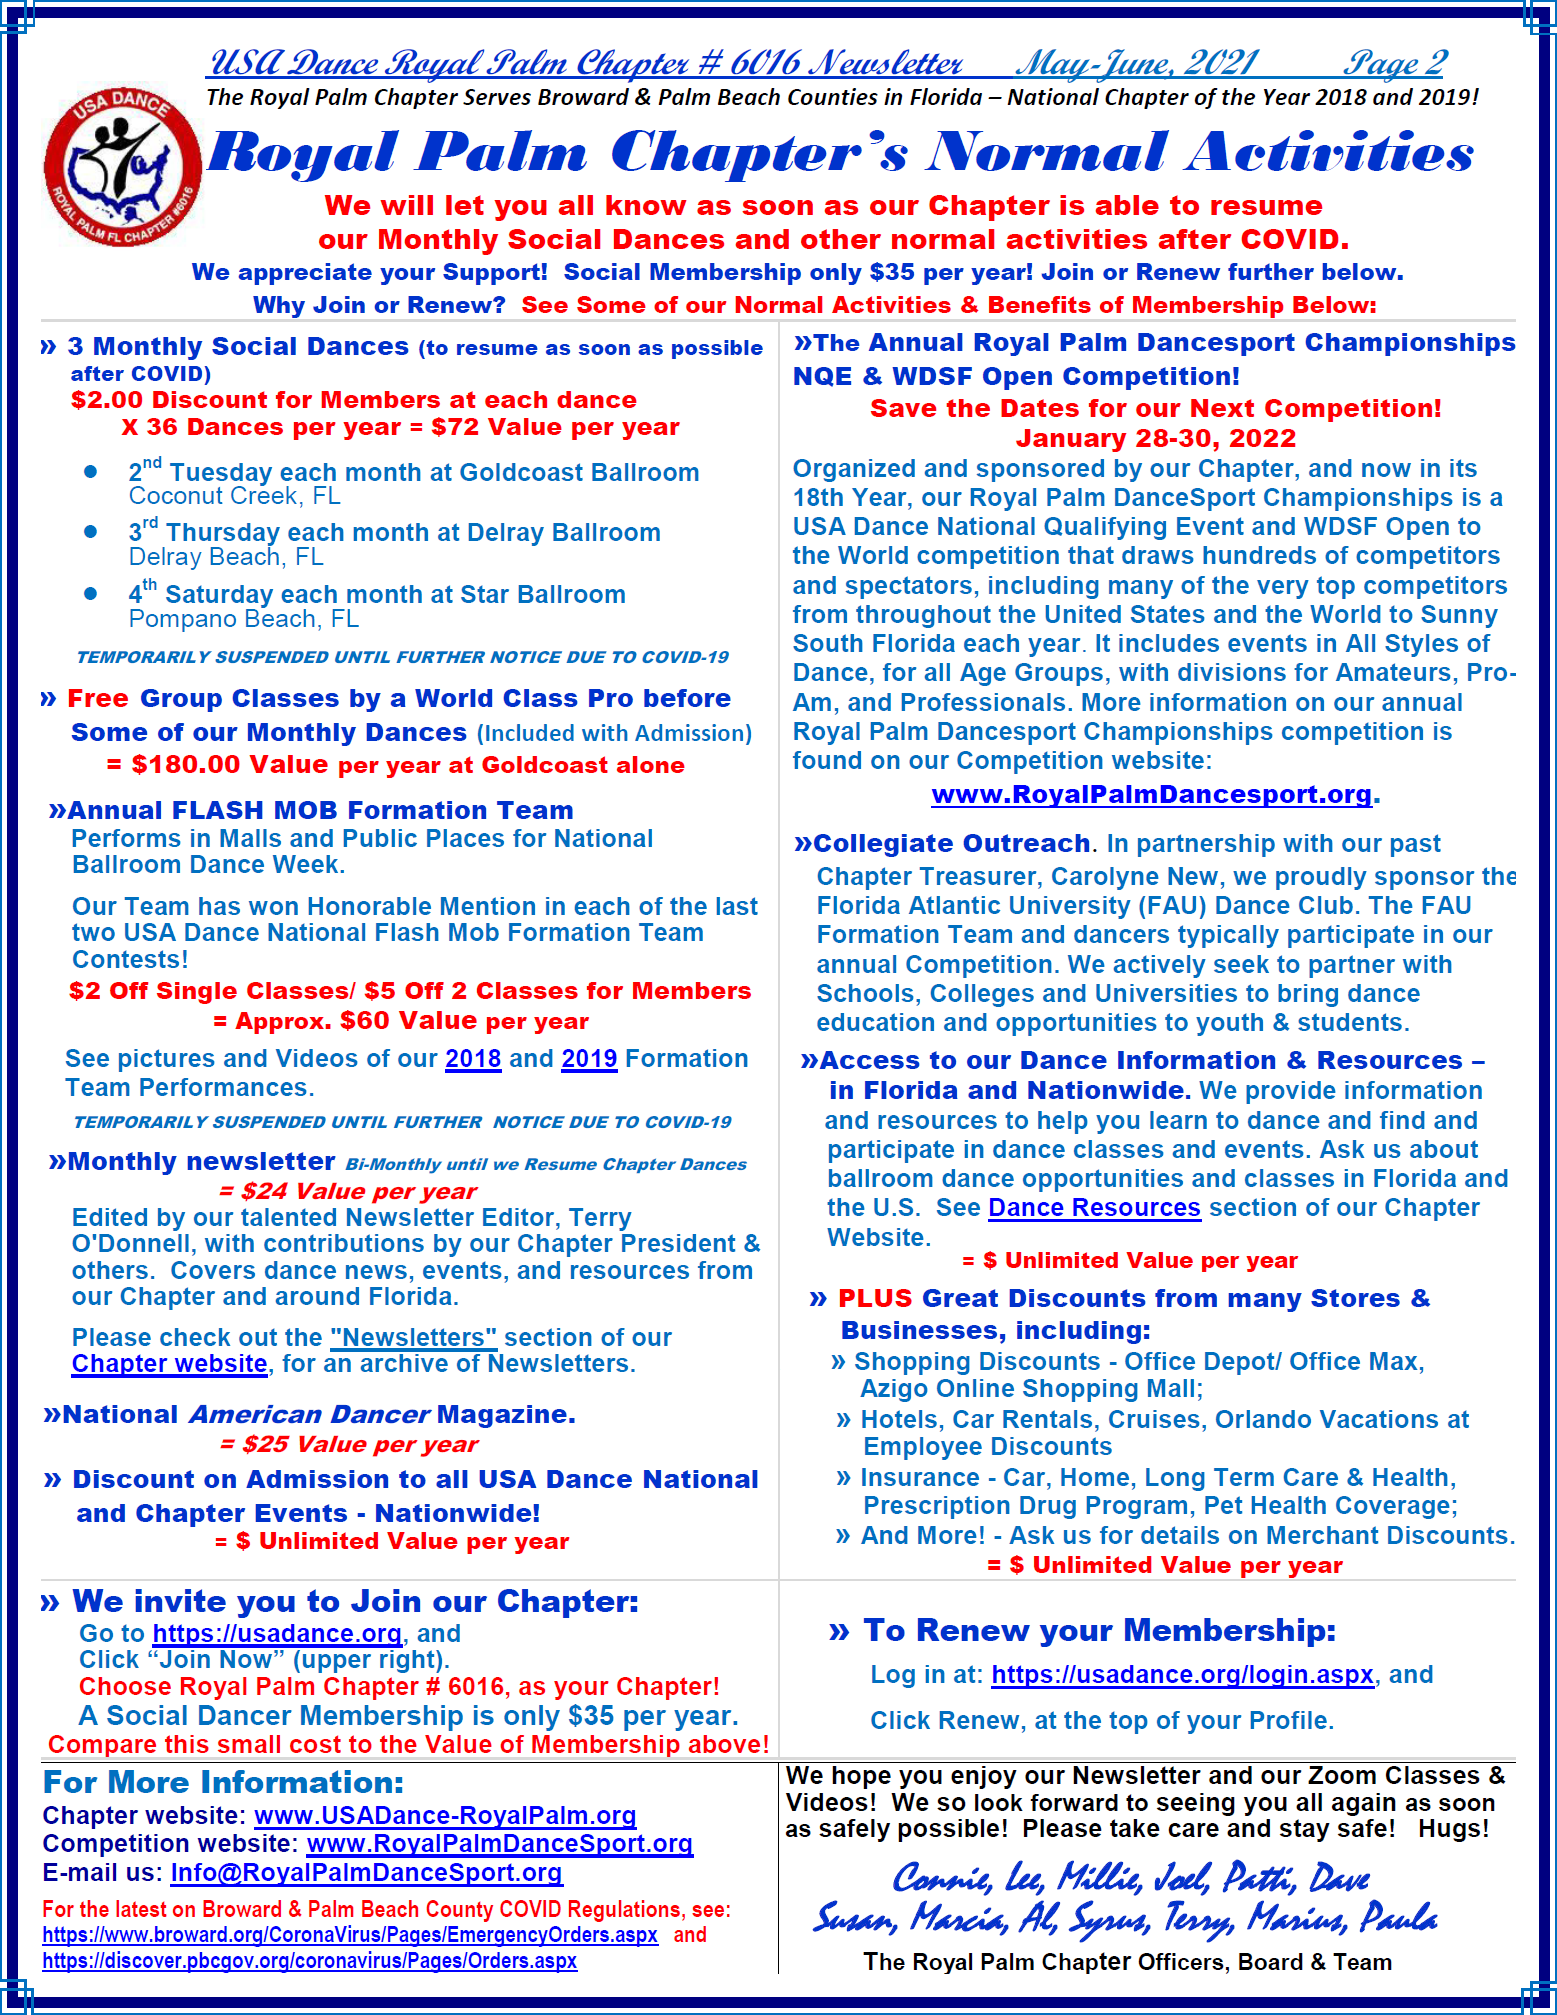 Royal Palm Chapter May-June, 2021 Newsletter - Page 2